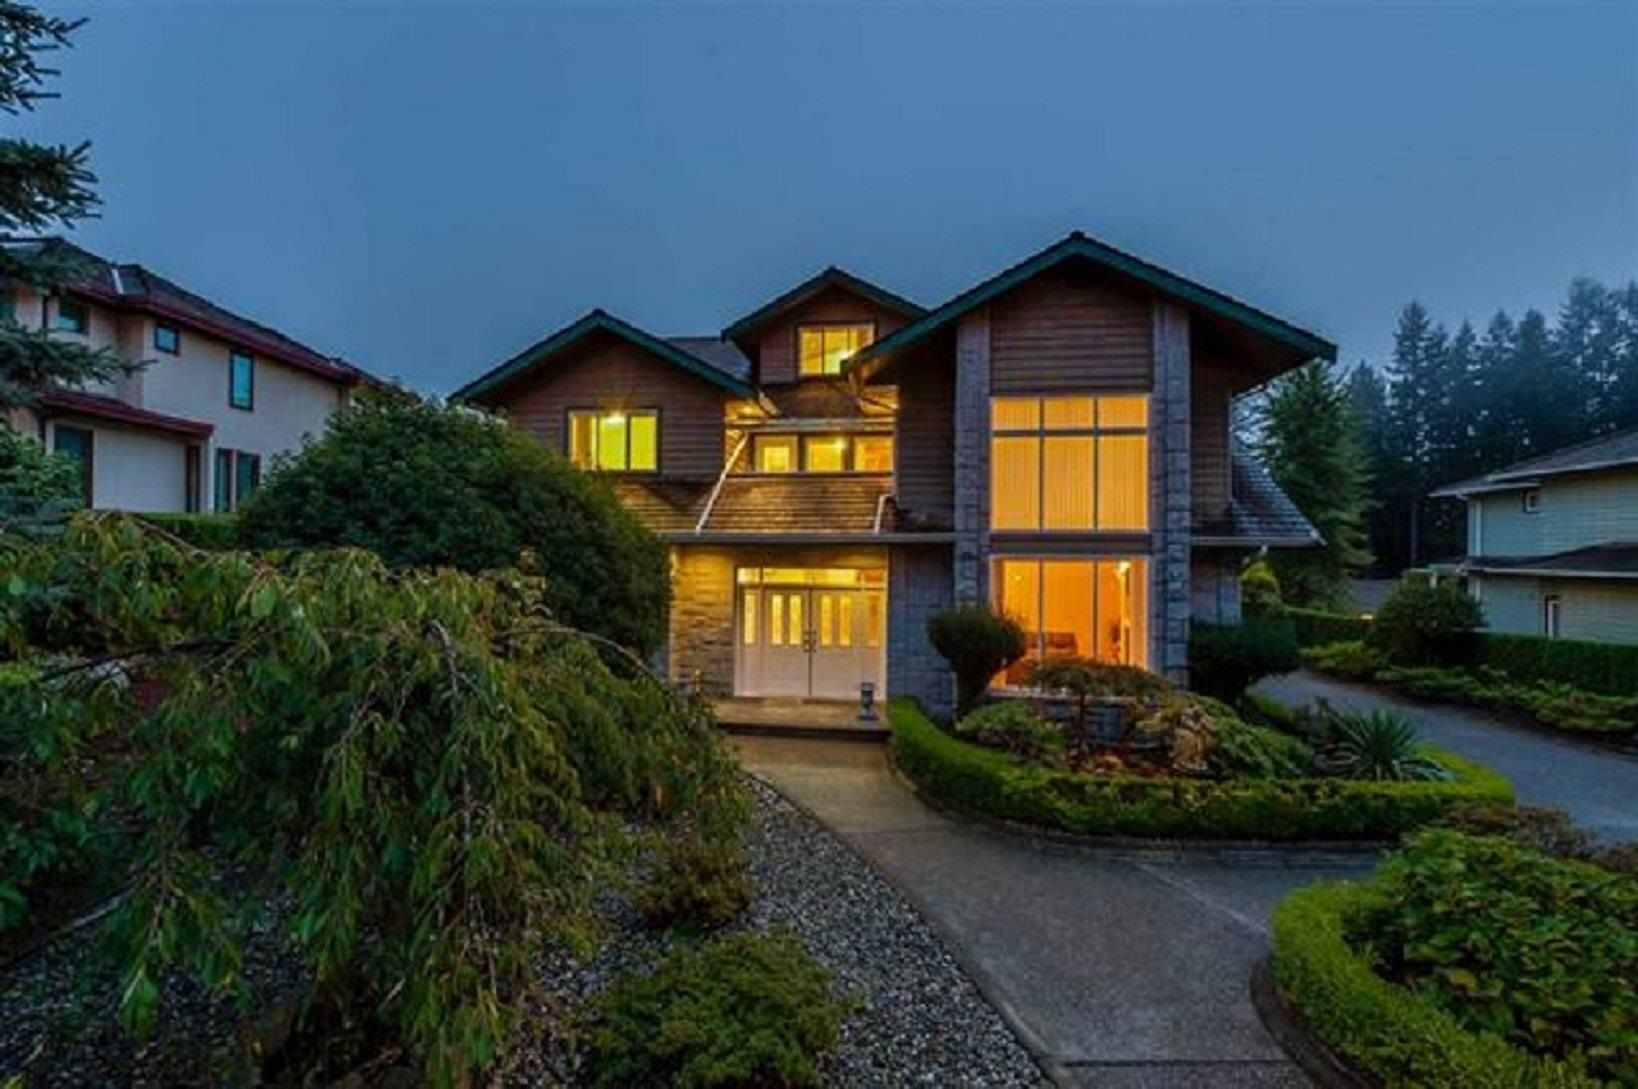 Main Photo: 927 DEMPSEY Road in North Vancouver: Braemar House for sale : MLS®# R2596812